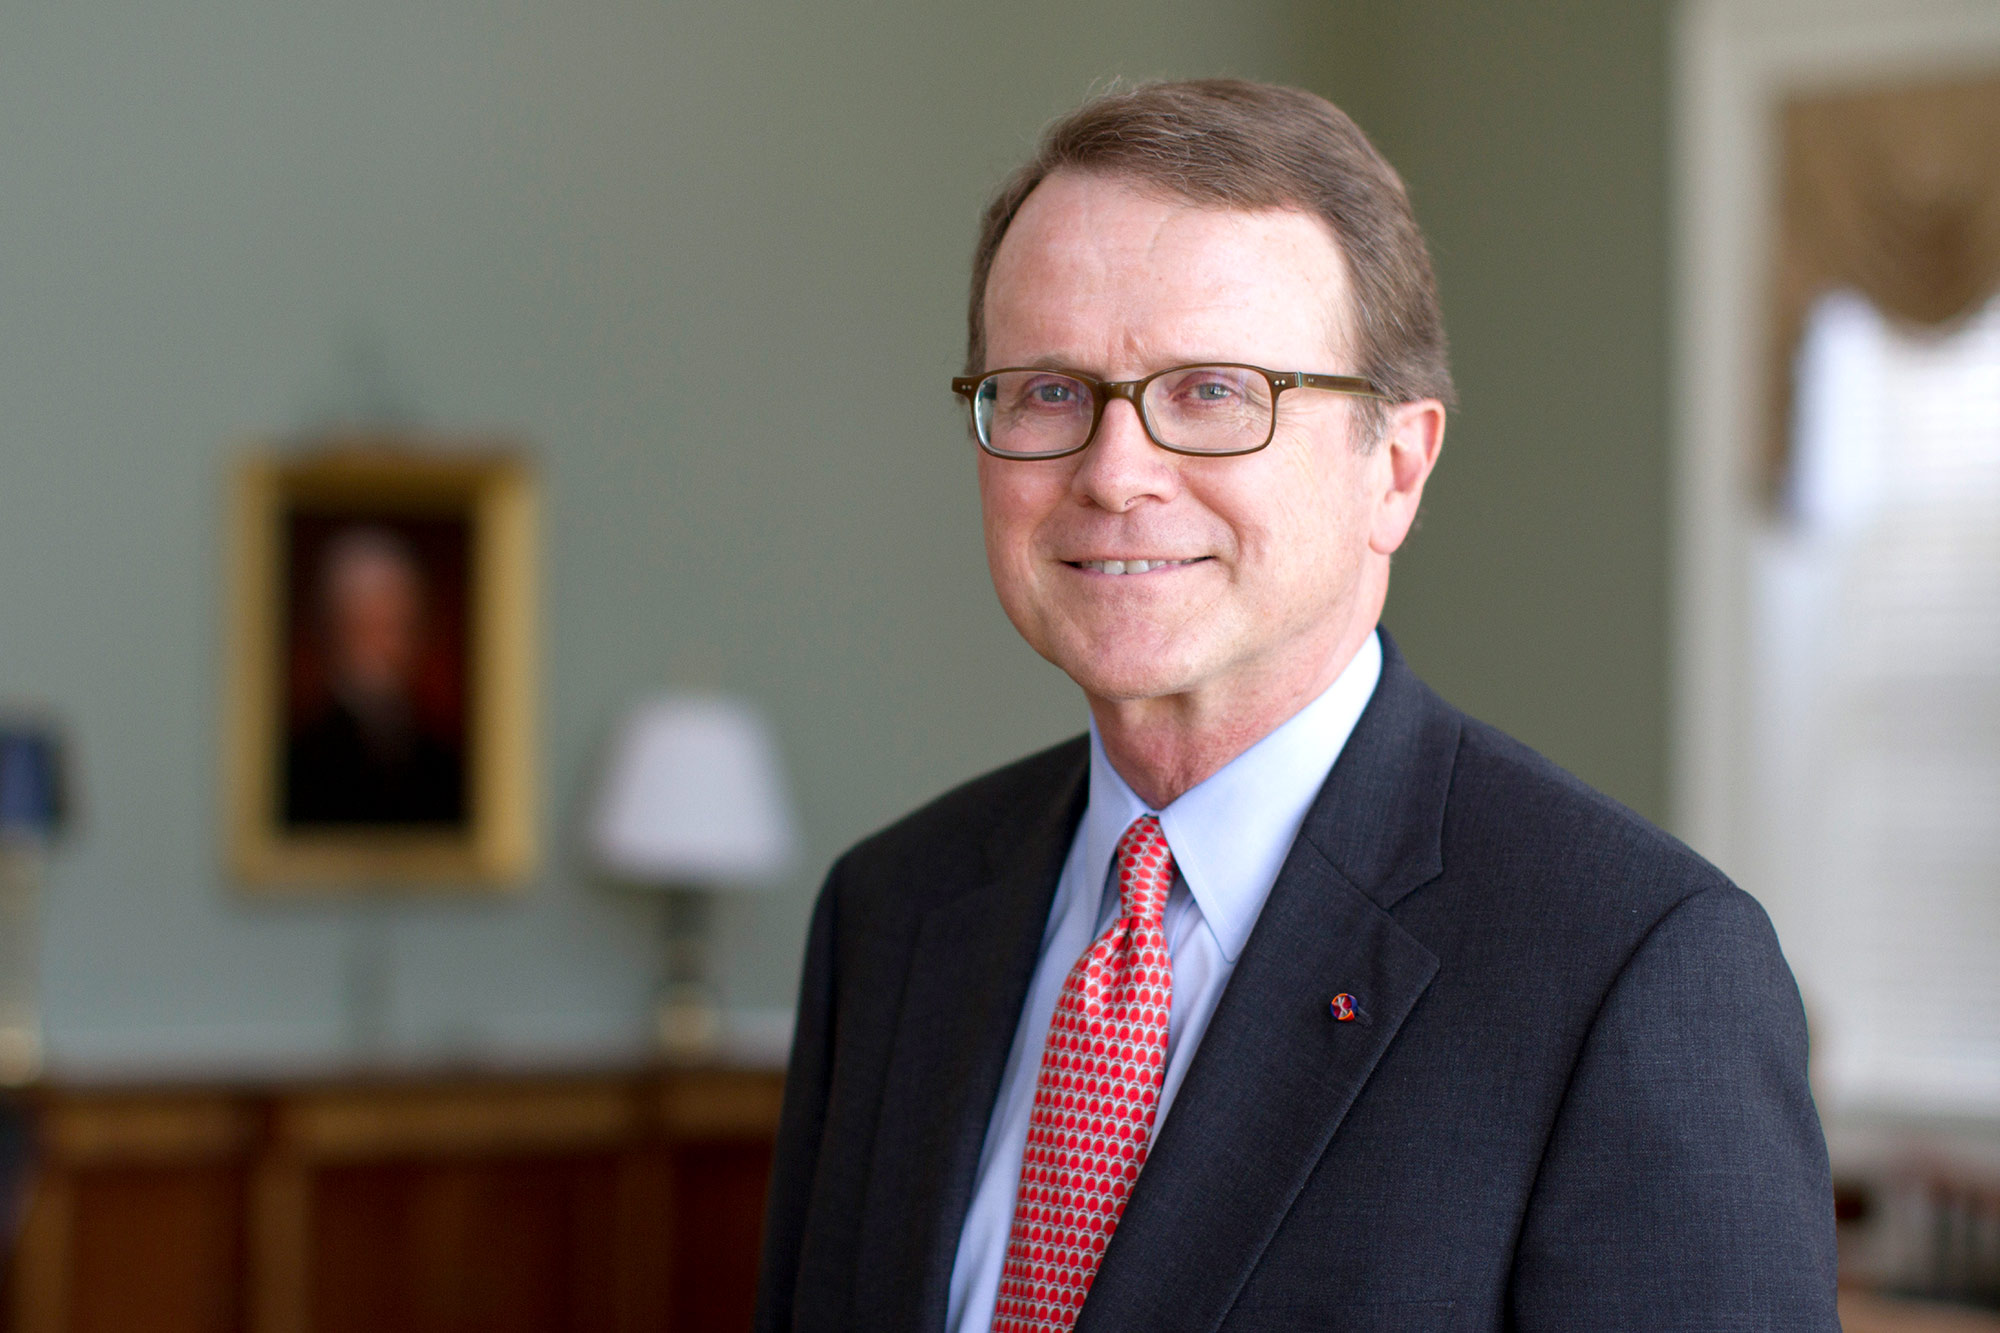 Robert F. Bruner served as Darden's dean for 10 years before returning to the faculty.